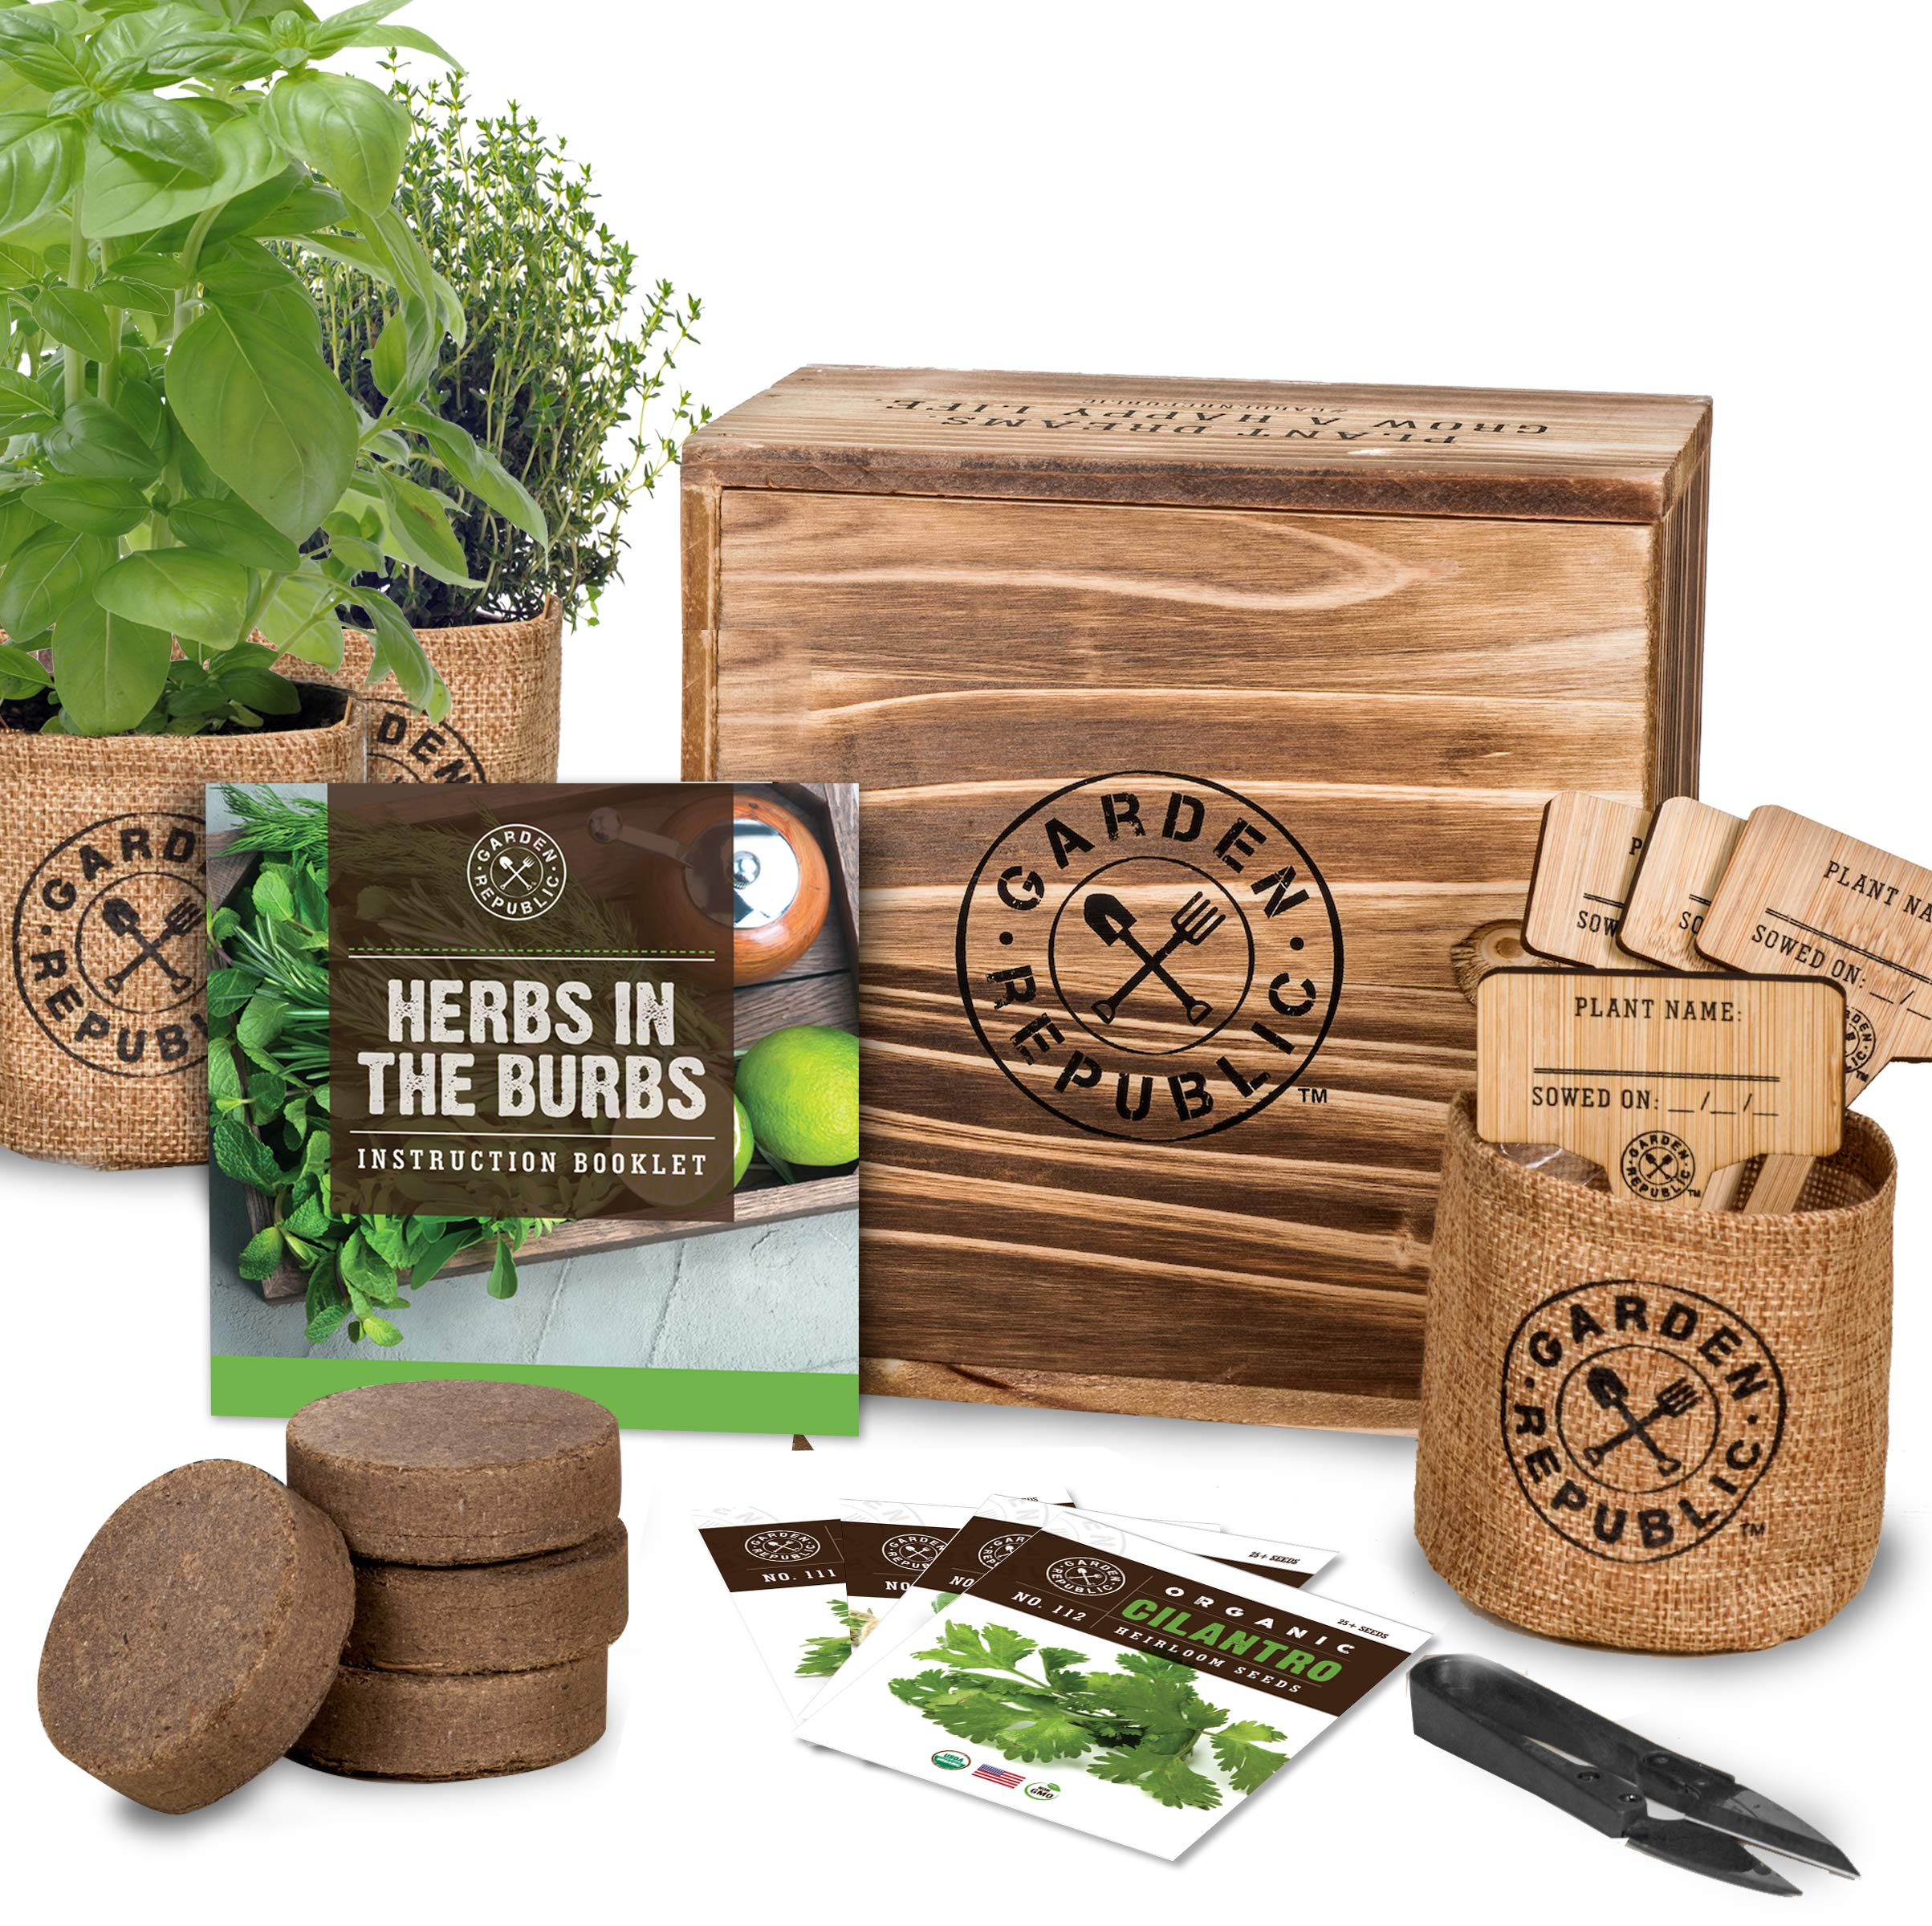 Indoor Herb Garden Starter Kit - Organic, Non GMO Herb Seeds - Basil Thyme Parsley Cilantro Seed, Potting Soil, Pots, Scissors - DIY Grow Kits for Growing Herbs Indoors, Kitchen, Balcony, Window Sill by · GARDEN REPUBLIC ·